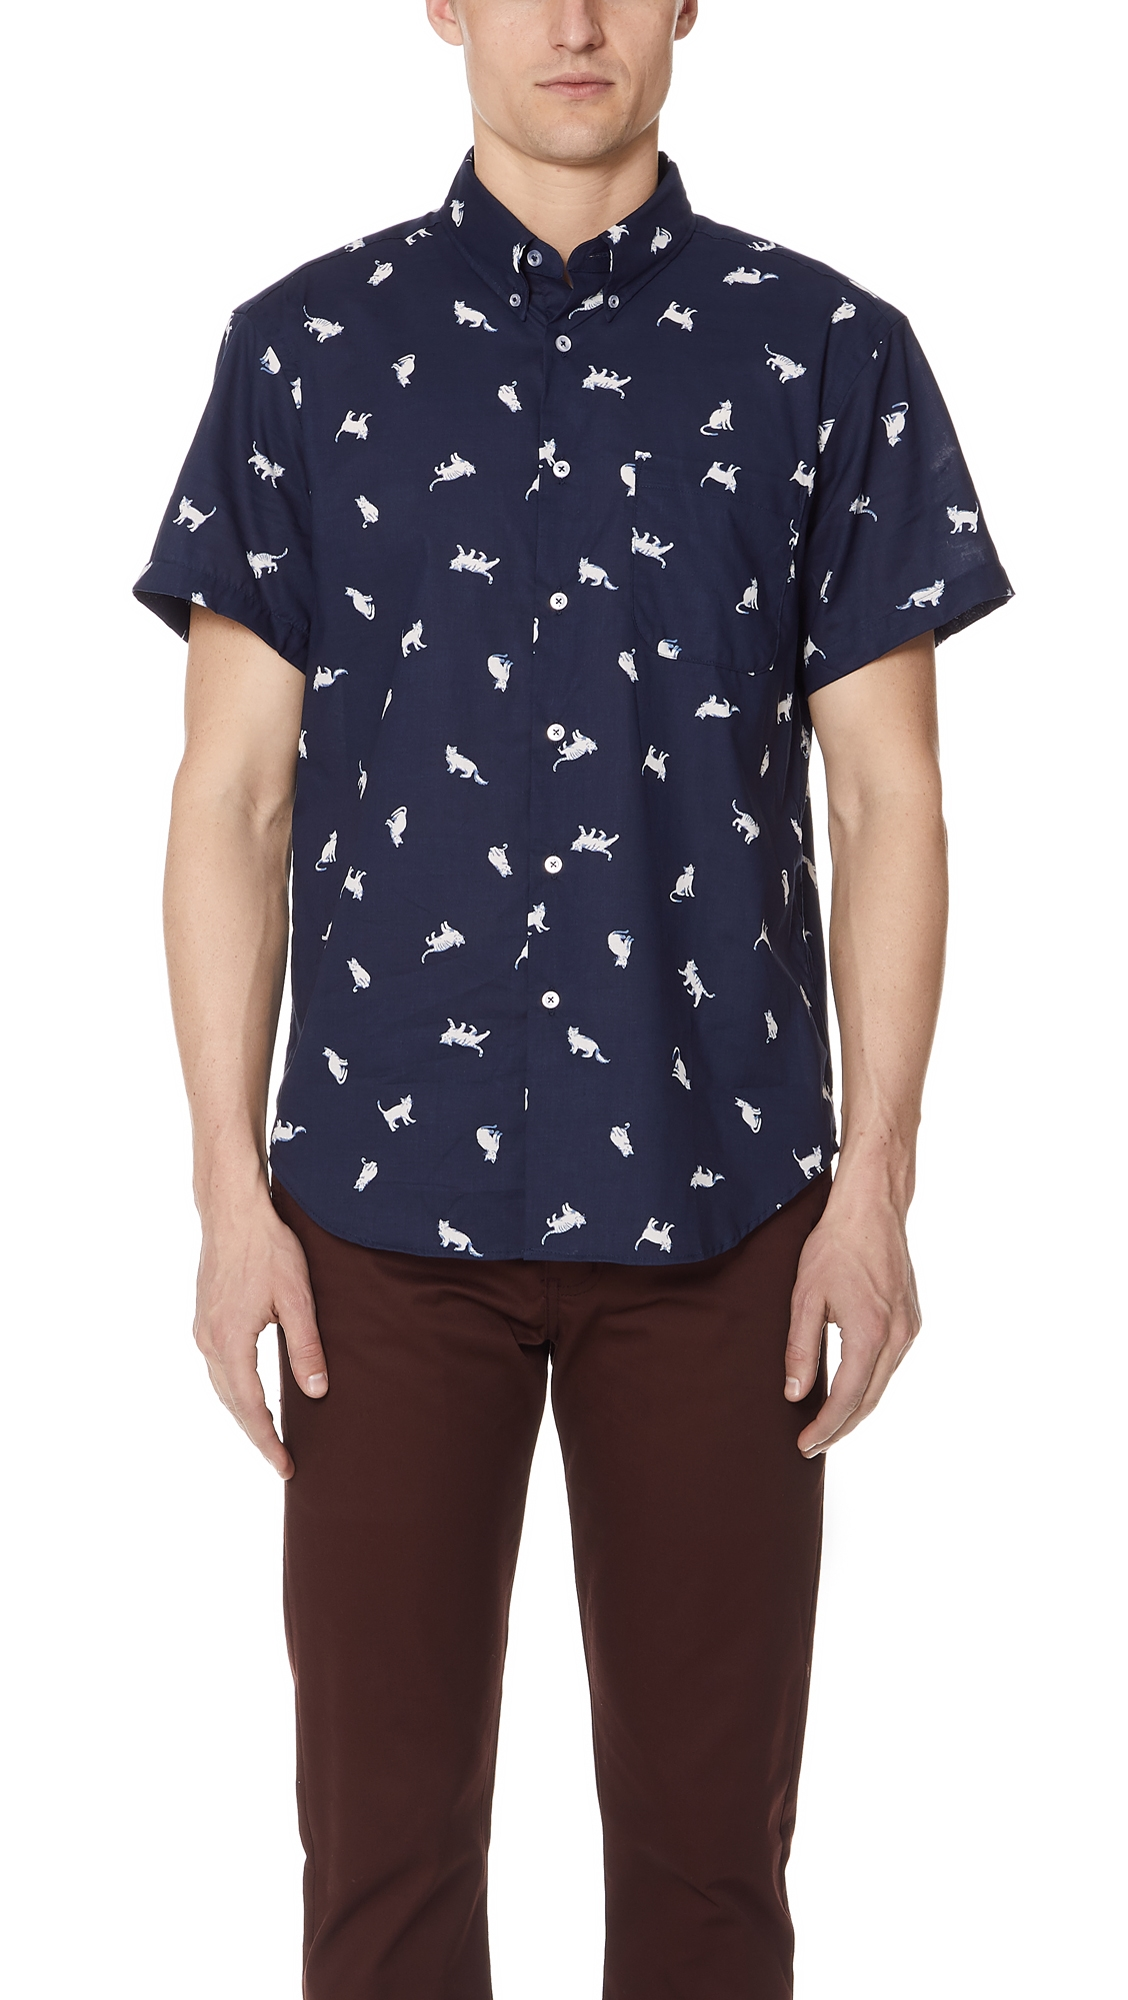 NAKED & FAMOUS CATS SHIRT